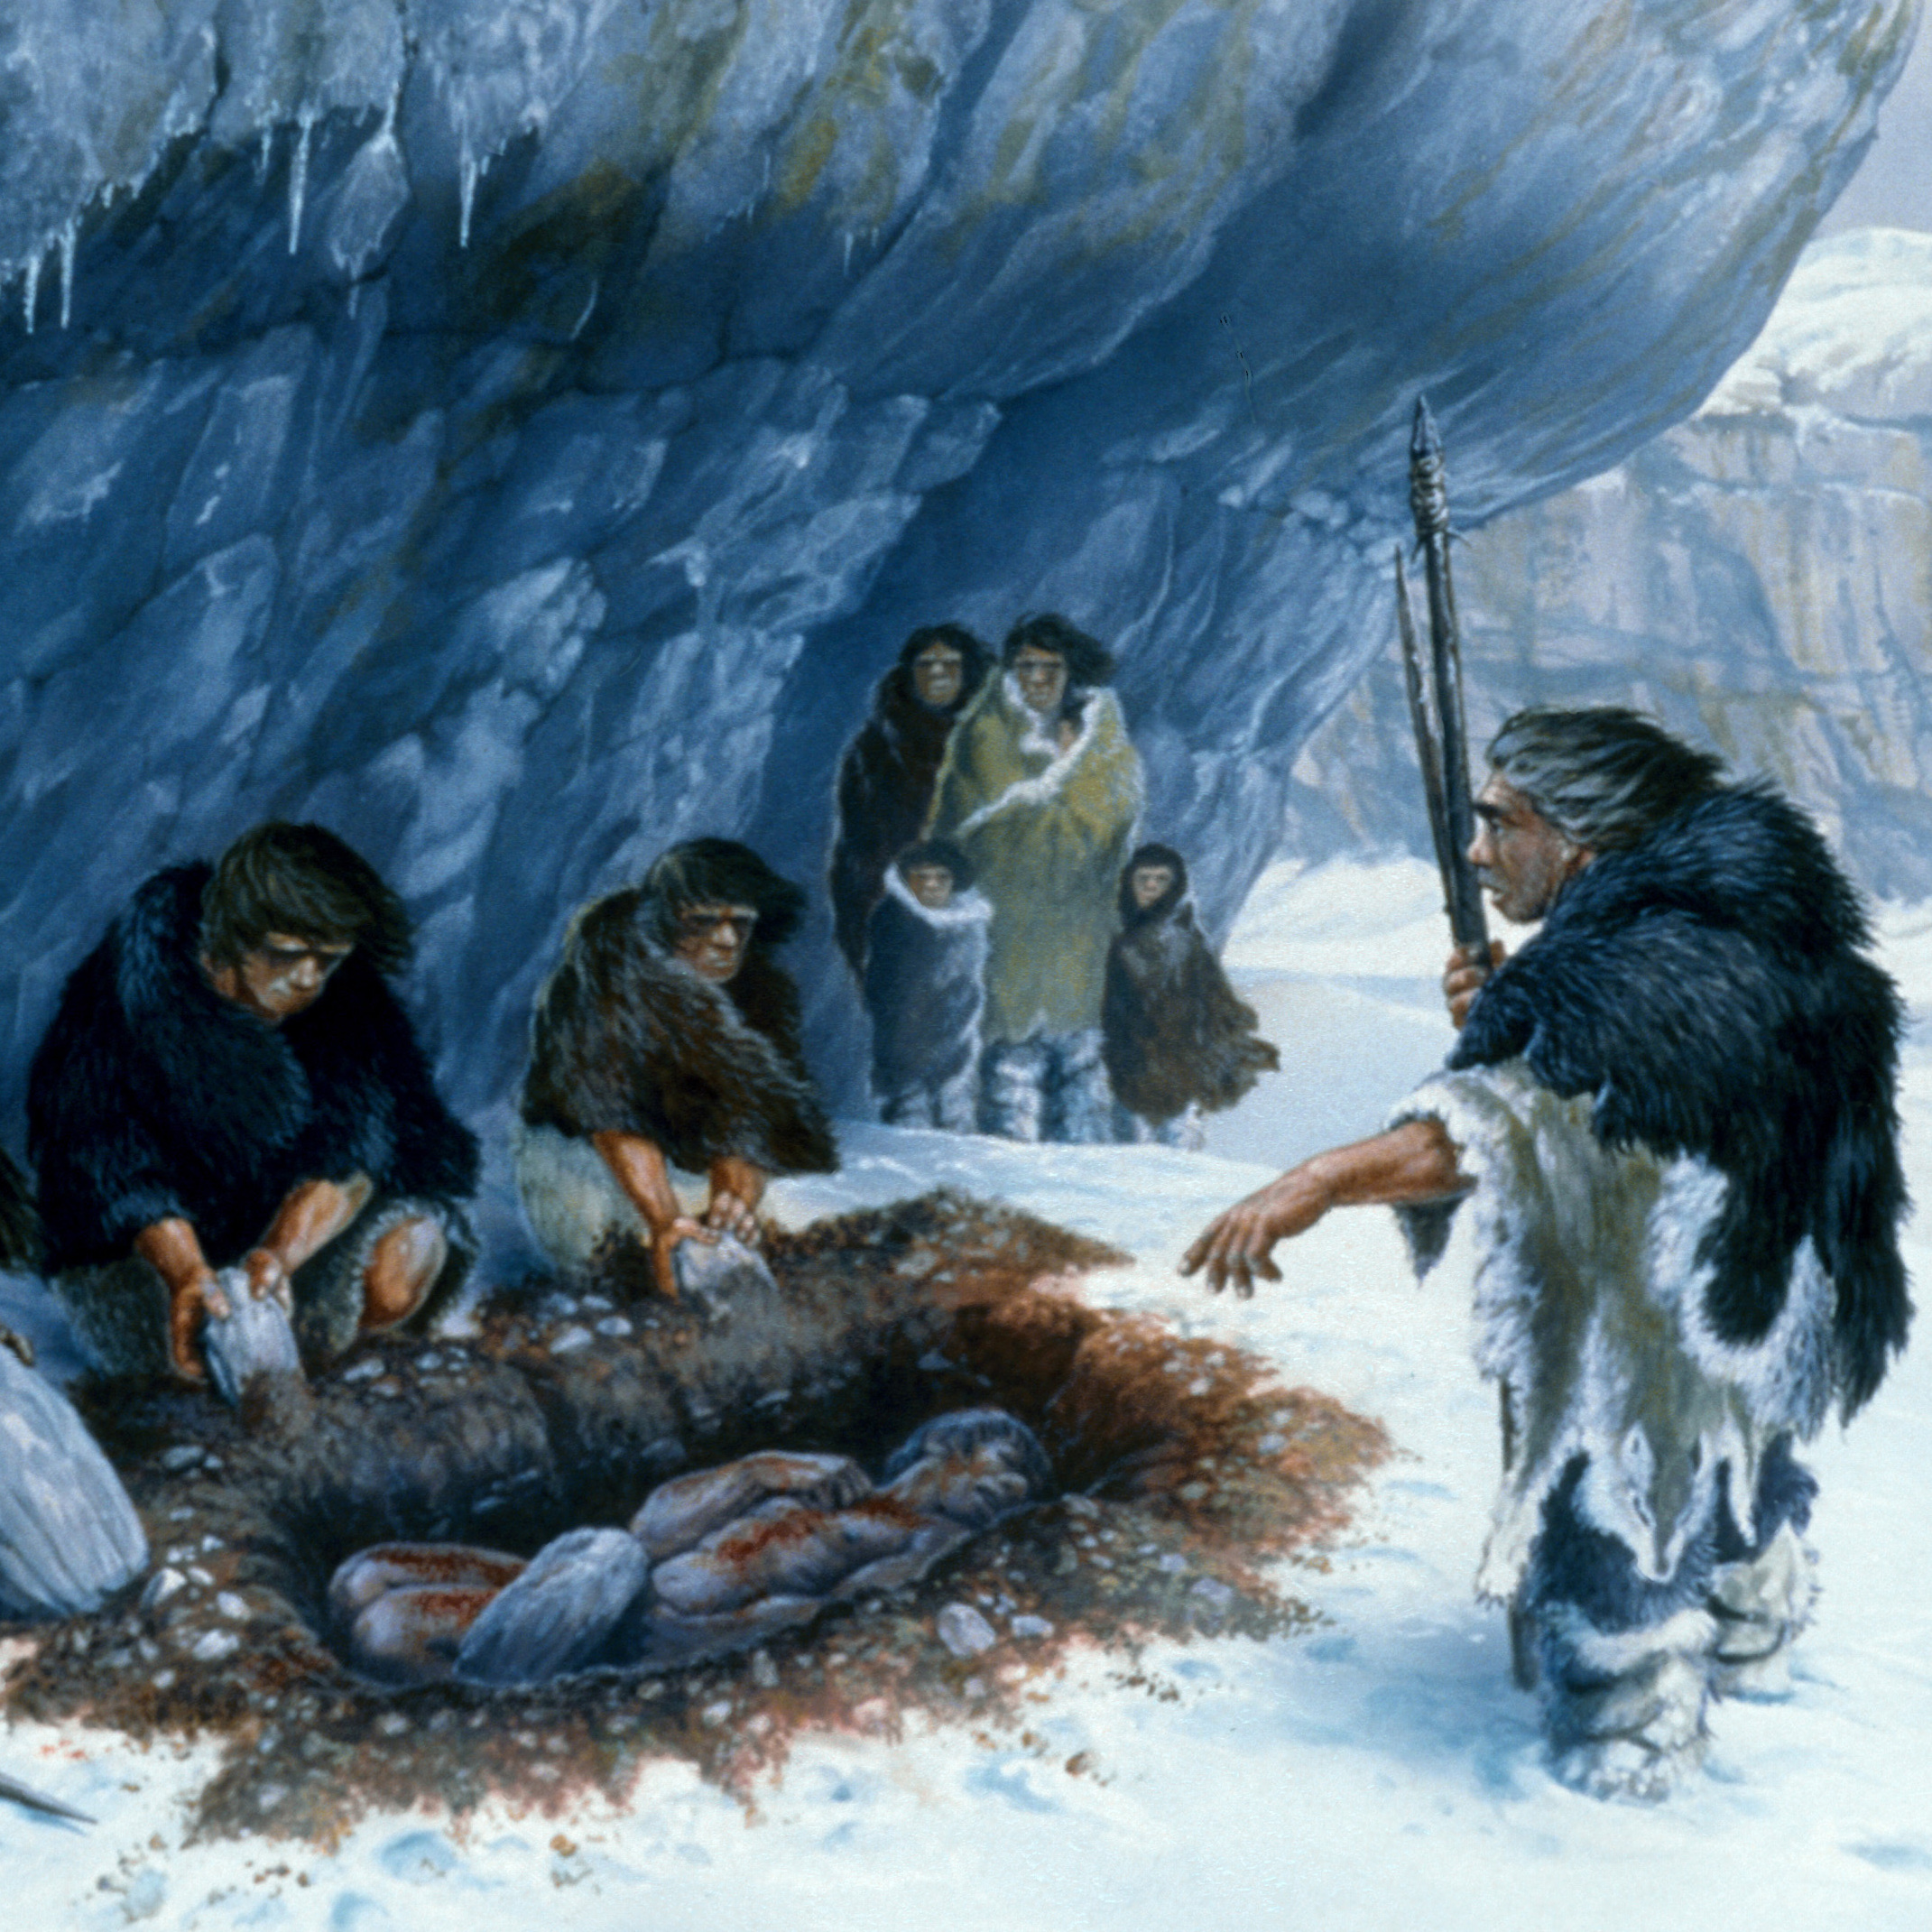 Neanderthal burial illustration